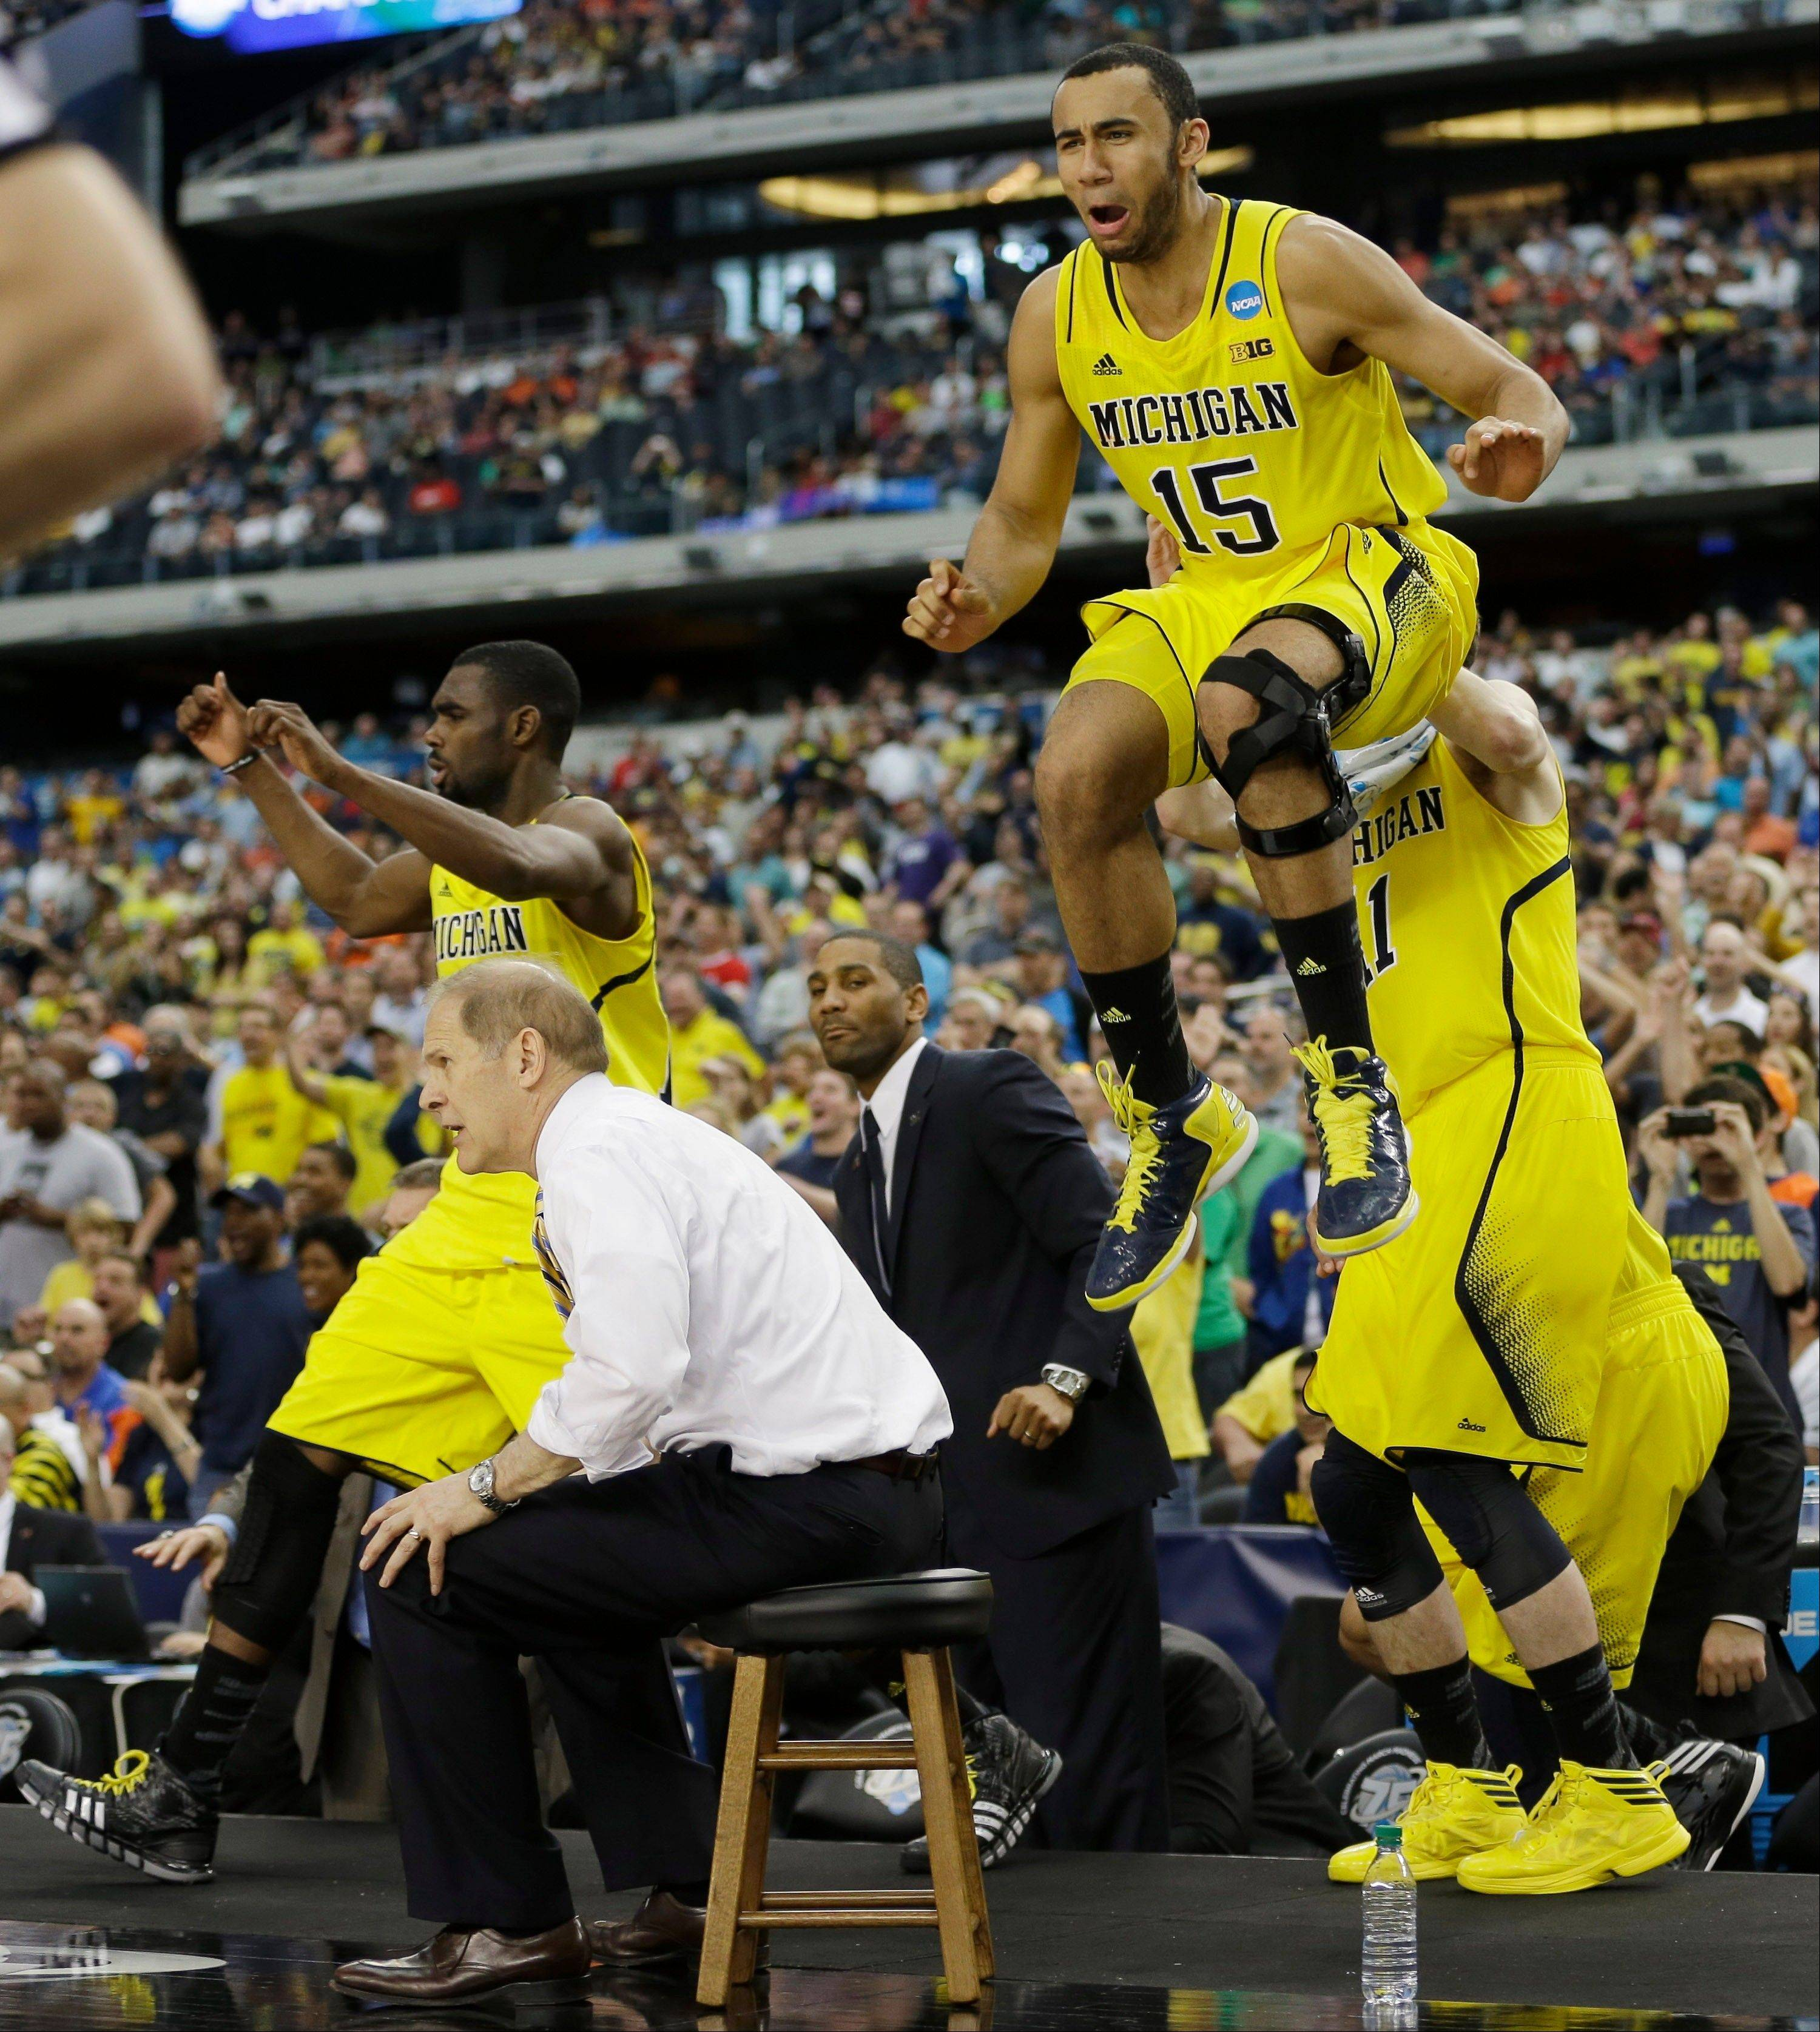 Michigan head coach John Beilein and players including Jon Horford (15) react against Florida during the second half of a regional final game in the NCAA college basketball tournament, Sunday, March 31, 2013, in Arlington, Texas. Michigan won 79-59.